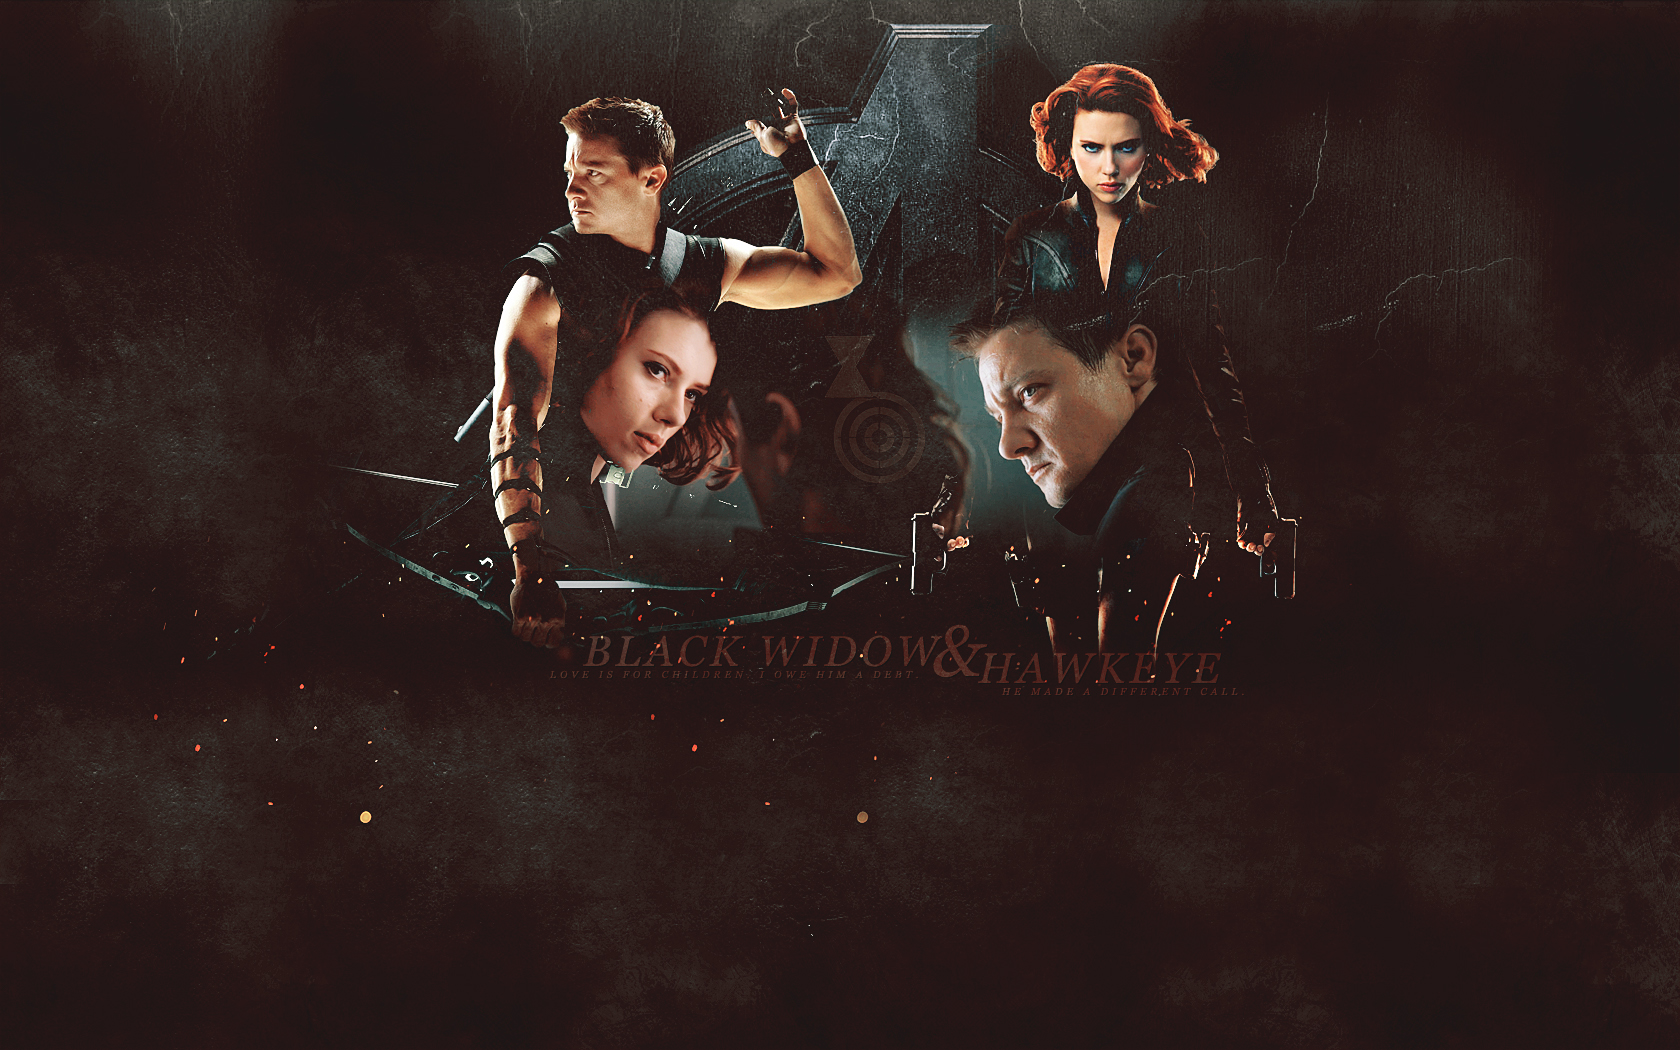 Wallpaper | The Avengers (2012) - Hawkeye/Black Widow